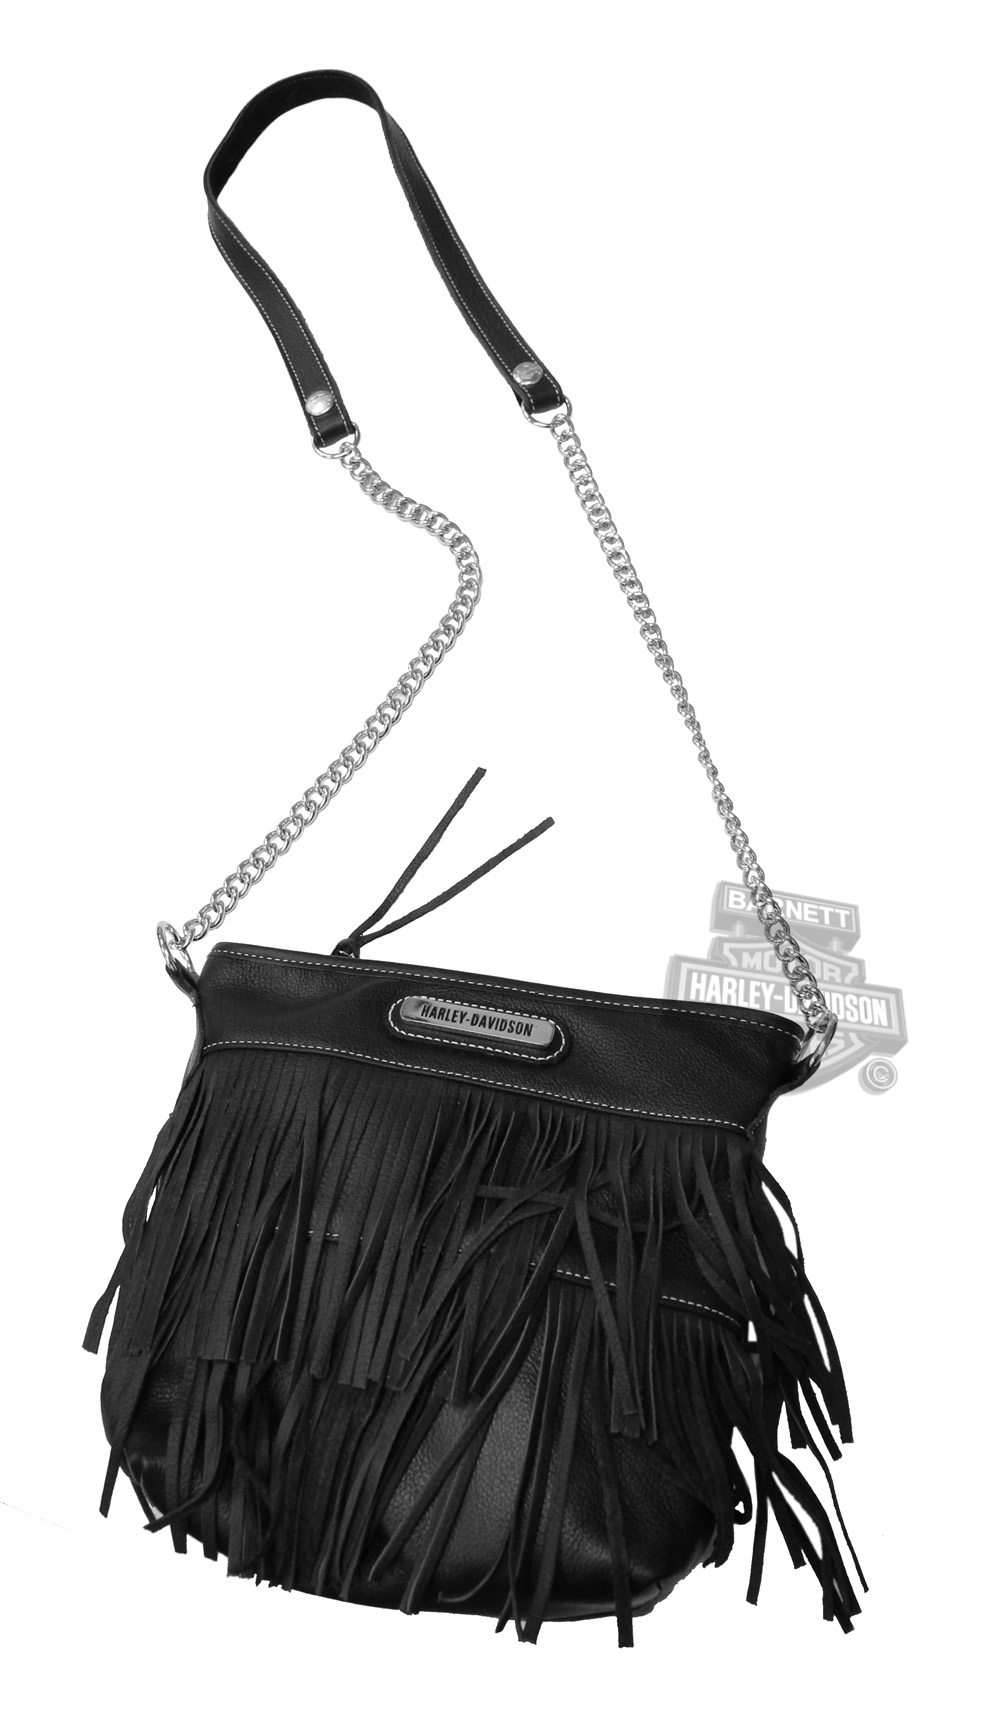 hfb3 - harley-davidson® womens fringe with chain strap crossbody